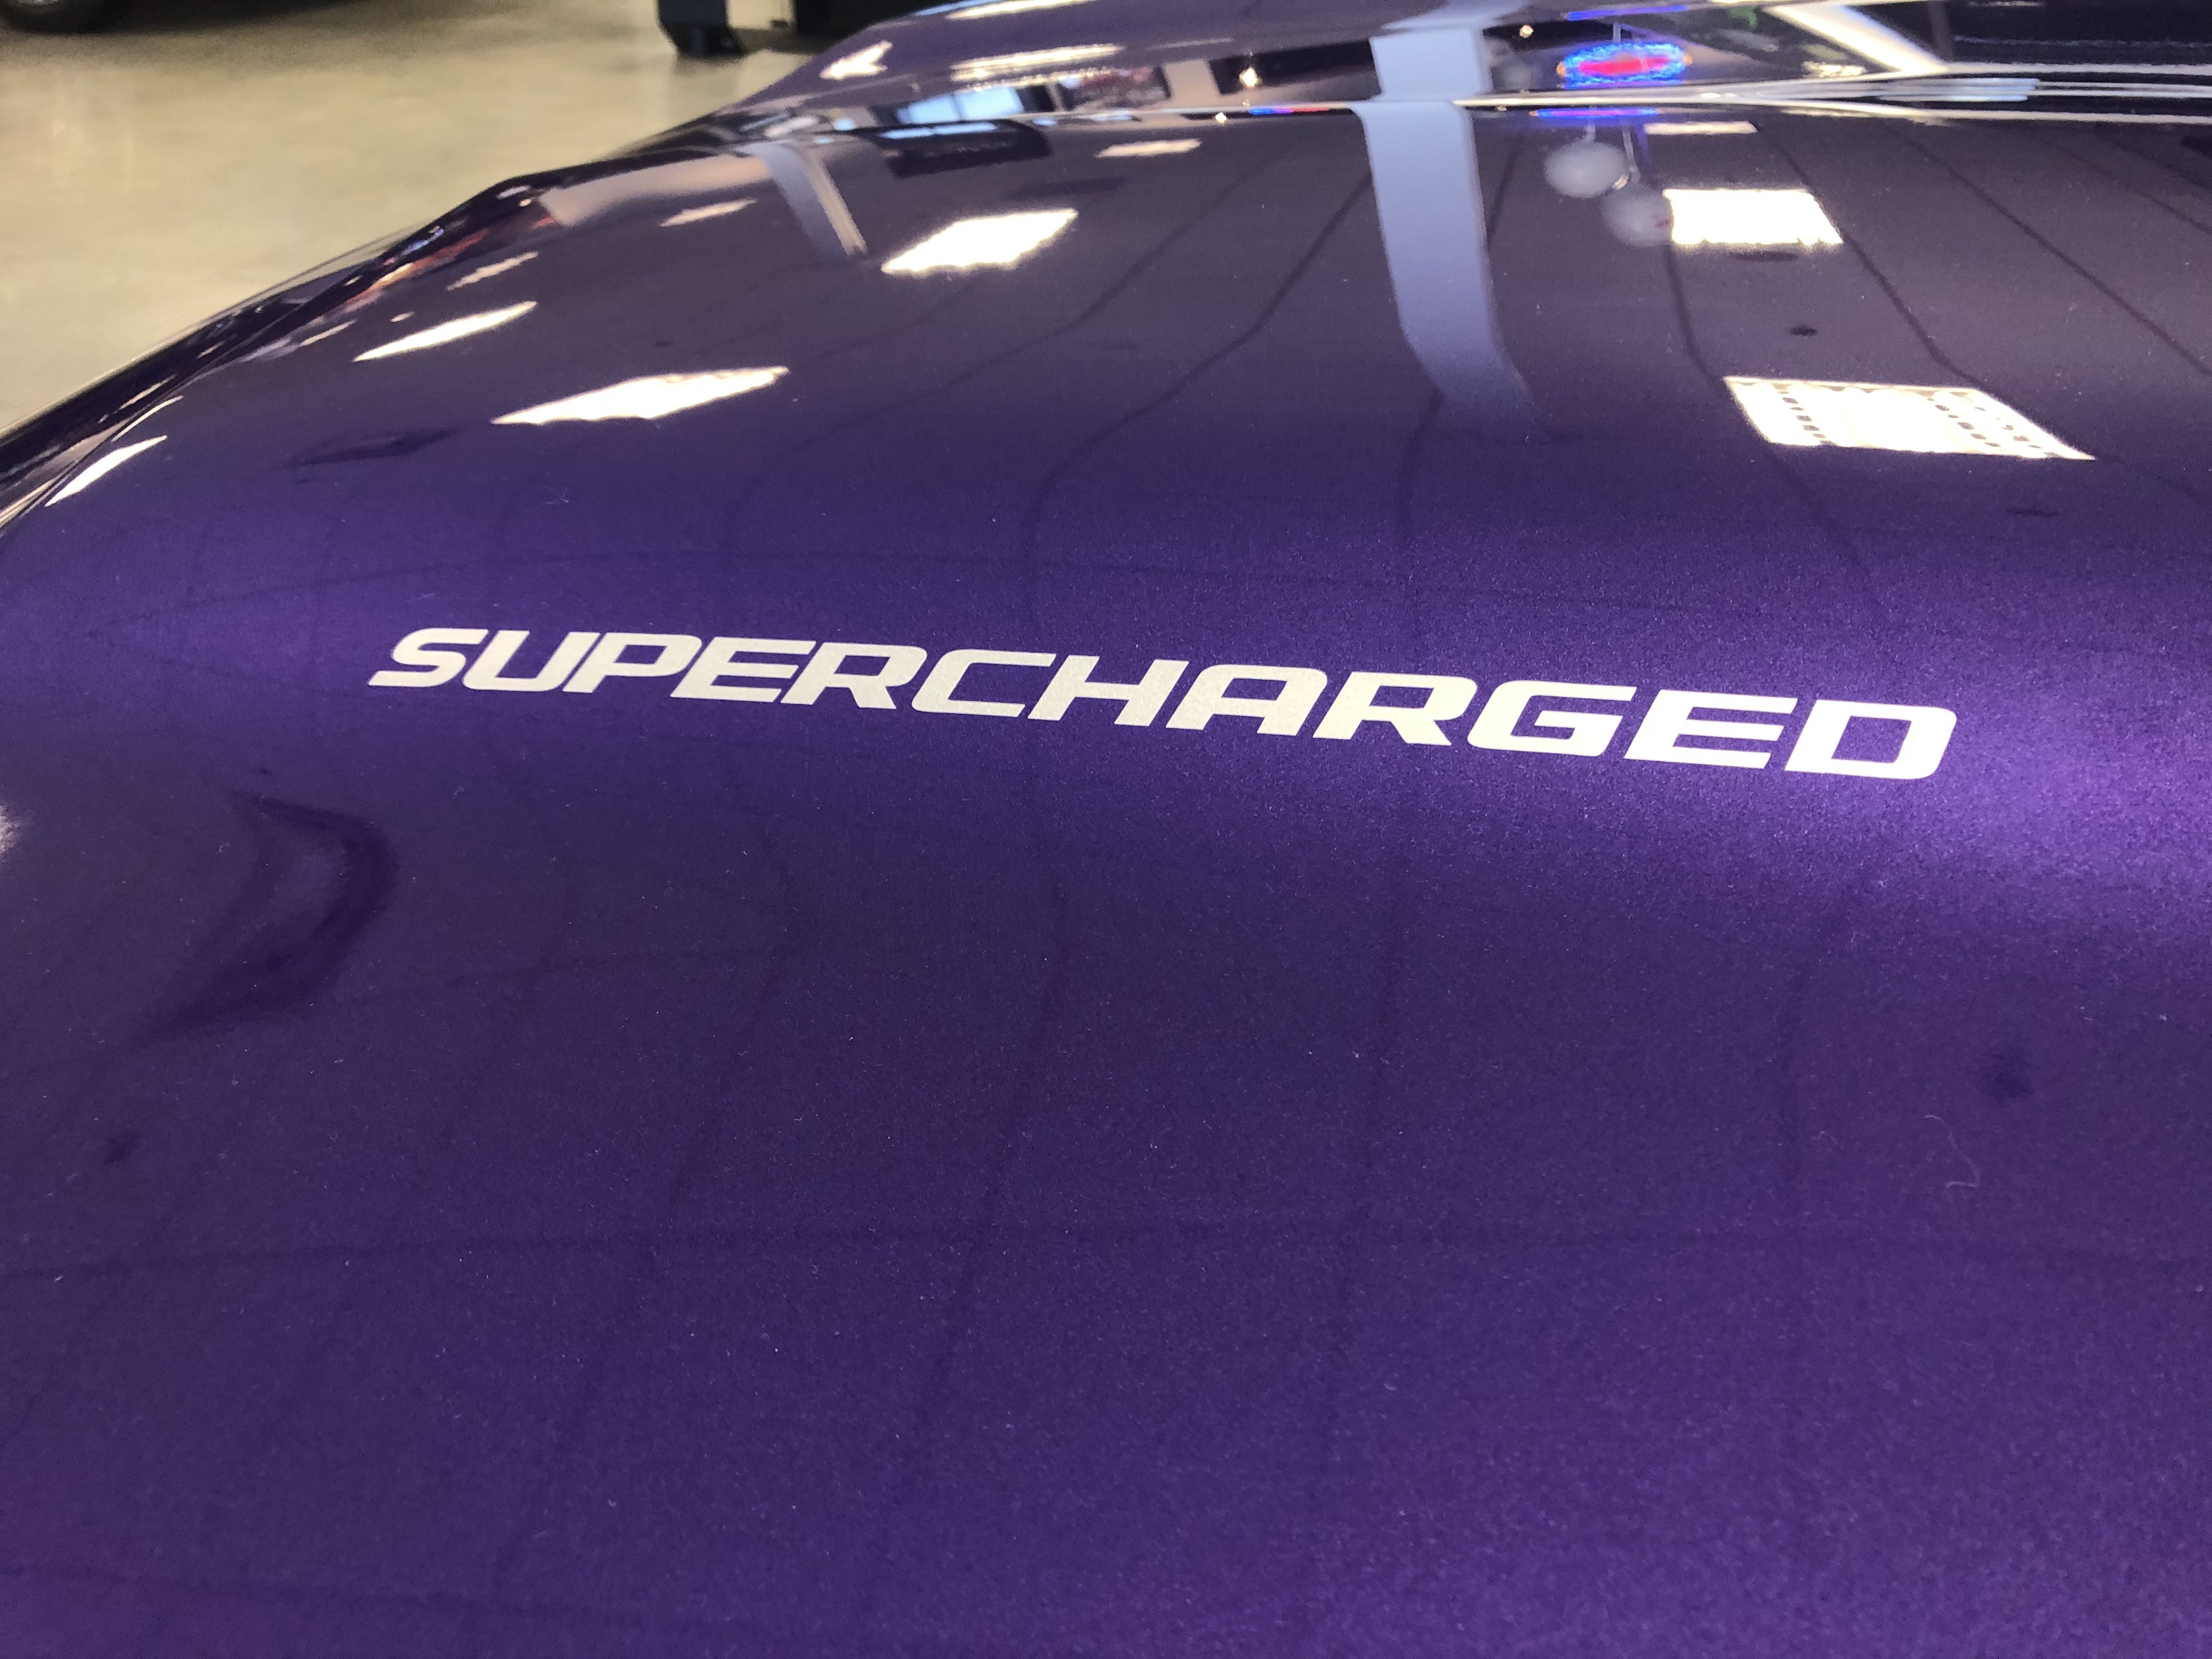 Universal Hood Decals Misc Makes and Models Supercharged Turbocharged